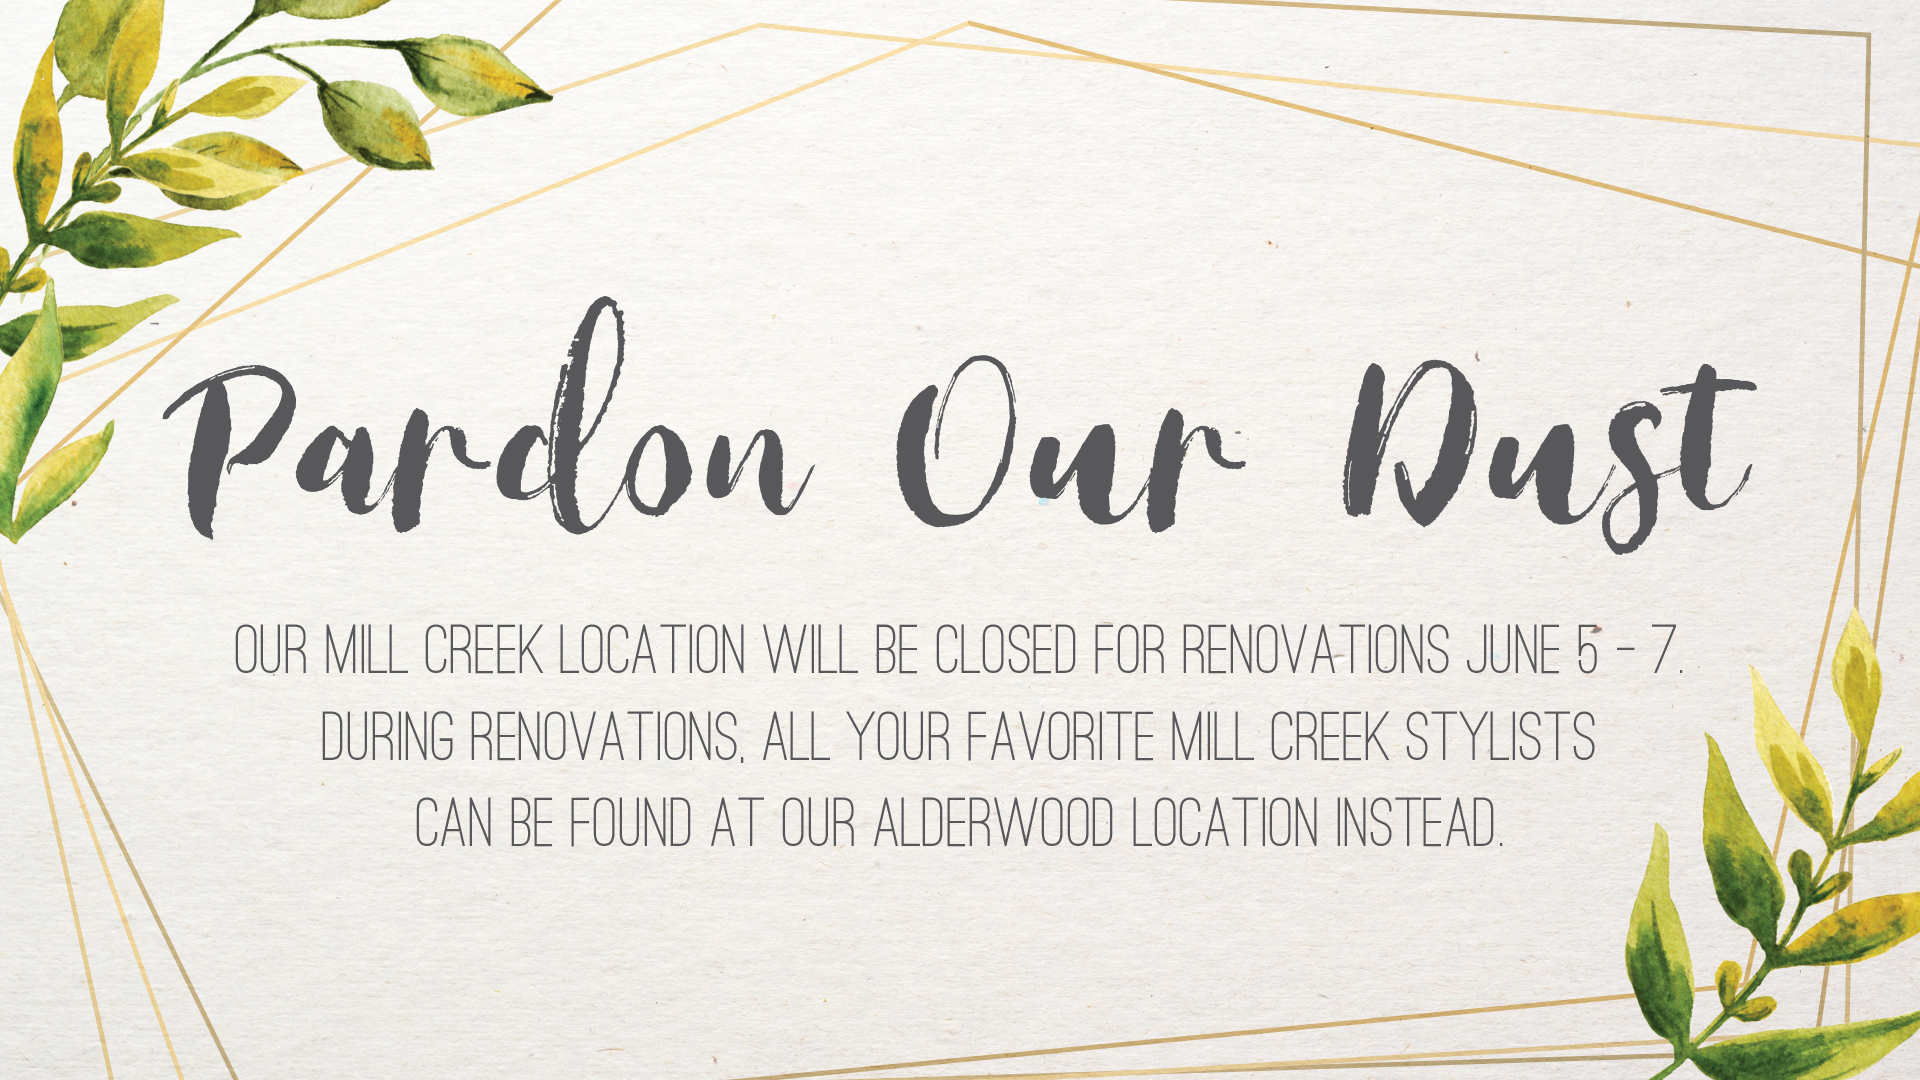 Pardon Our Dust - Elle Marie Mill Creek will close for renovations June 5 - 8